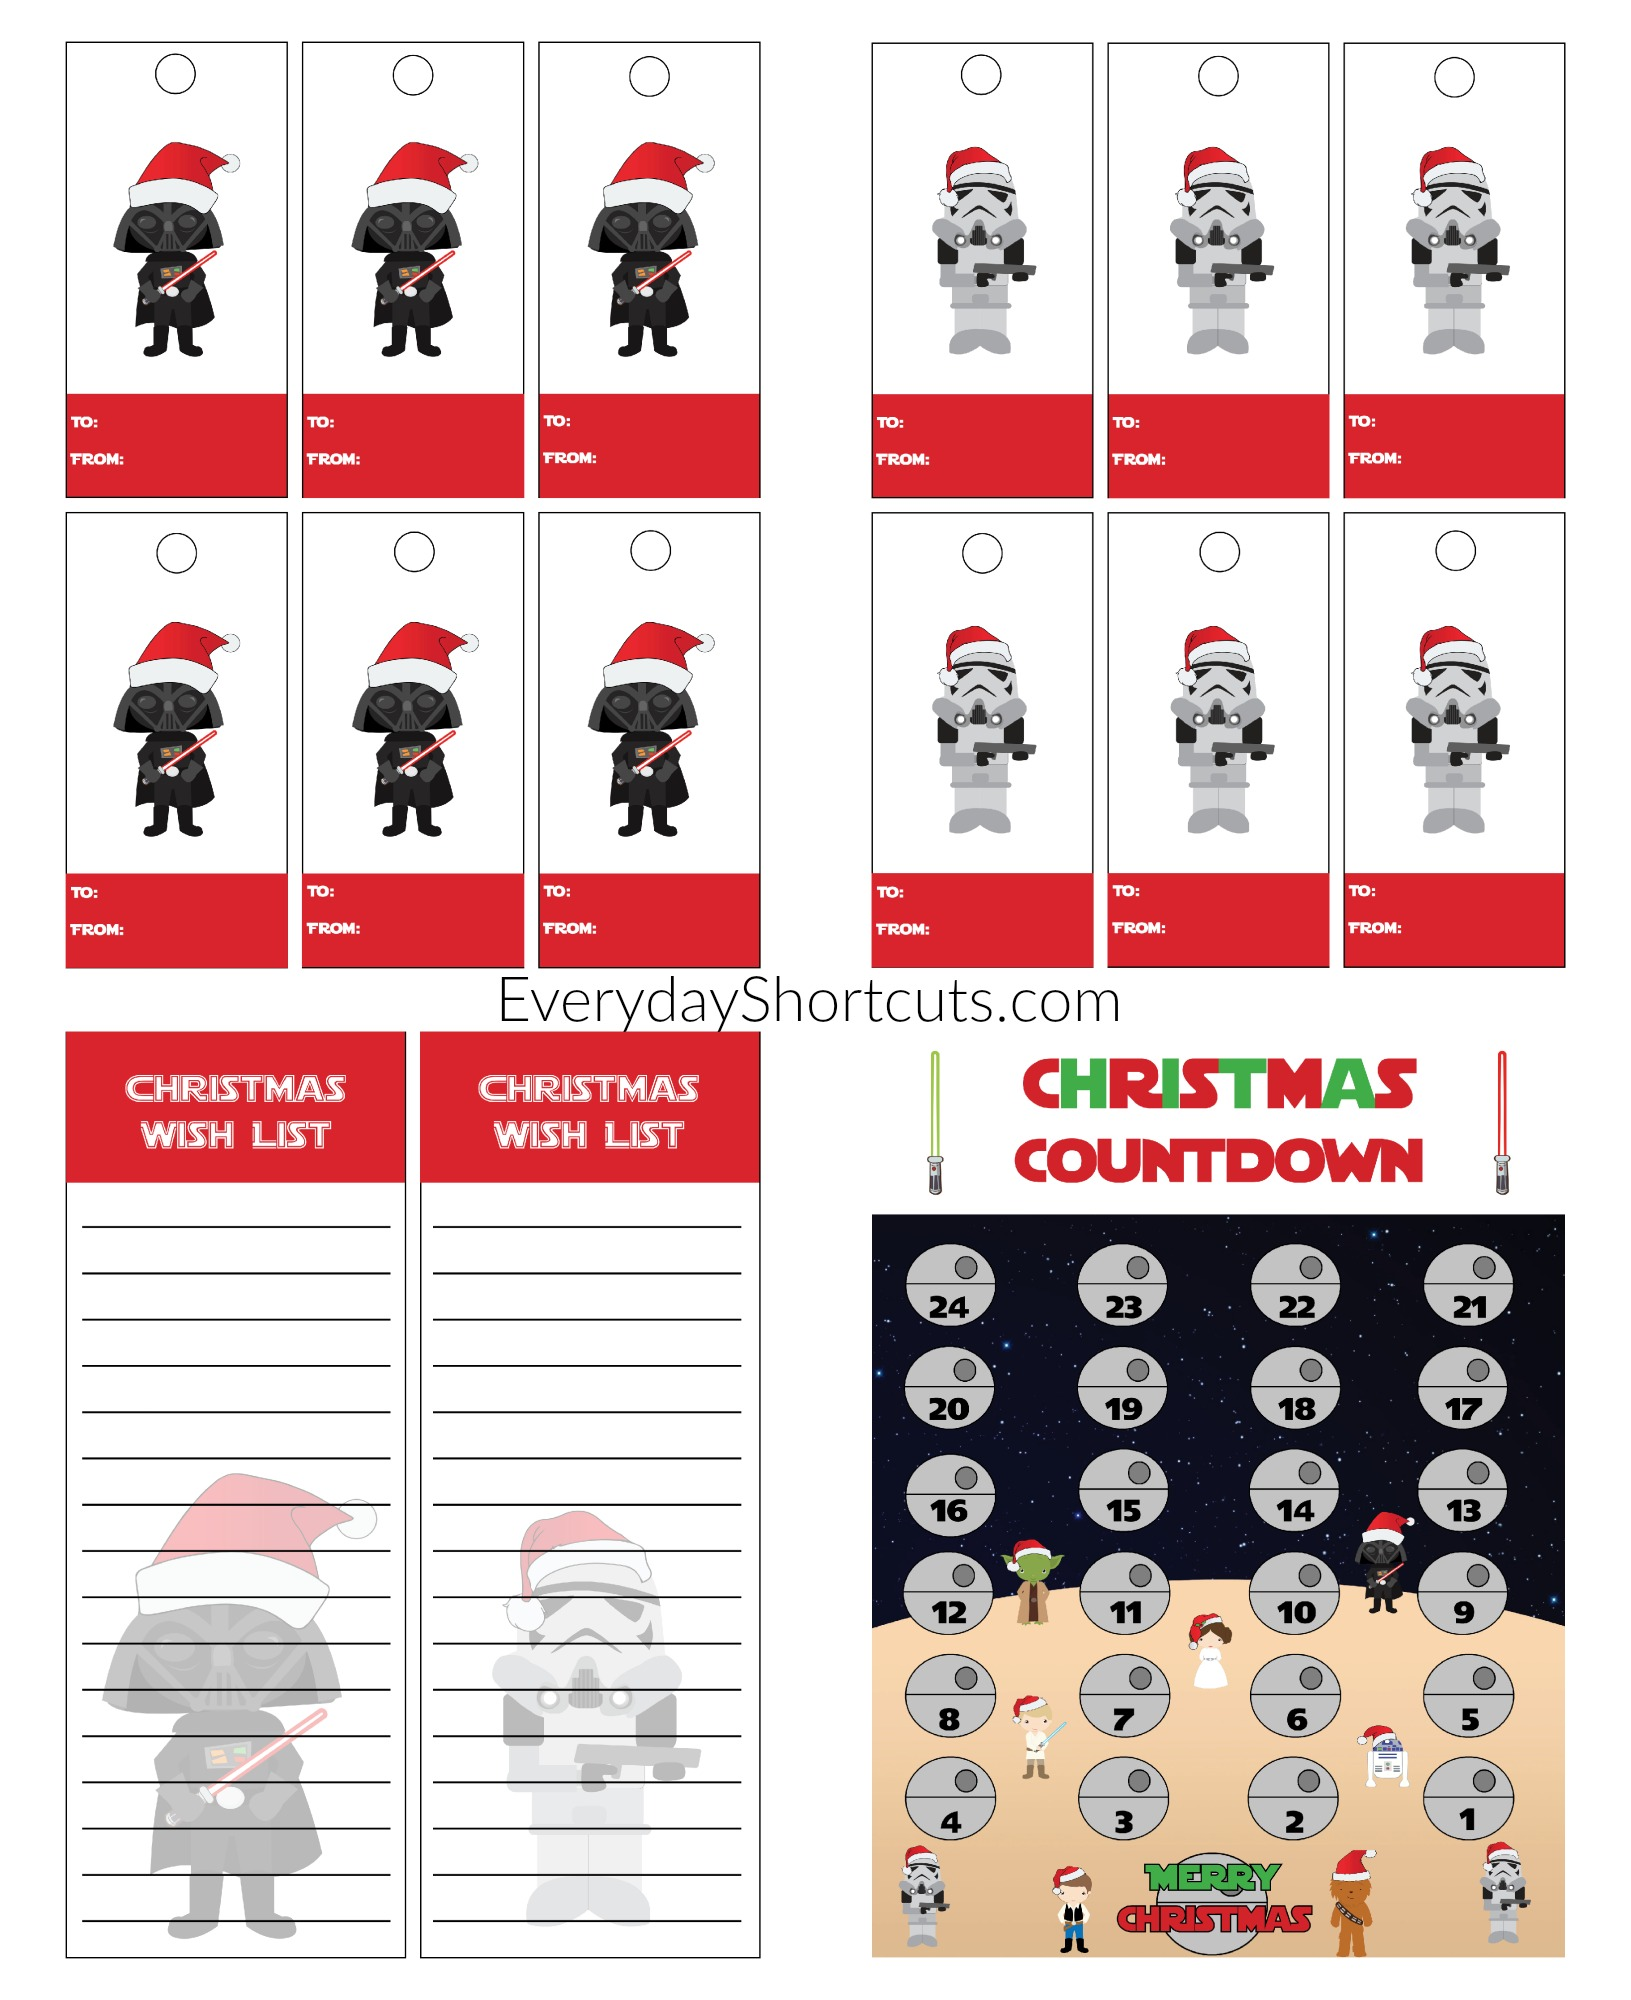 picture relating to Printable Star Wars Images called Star Wars Themed Xmas Printable Fastened - Desire Record, Reward